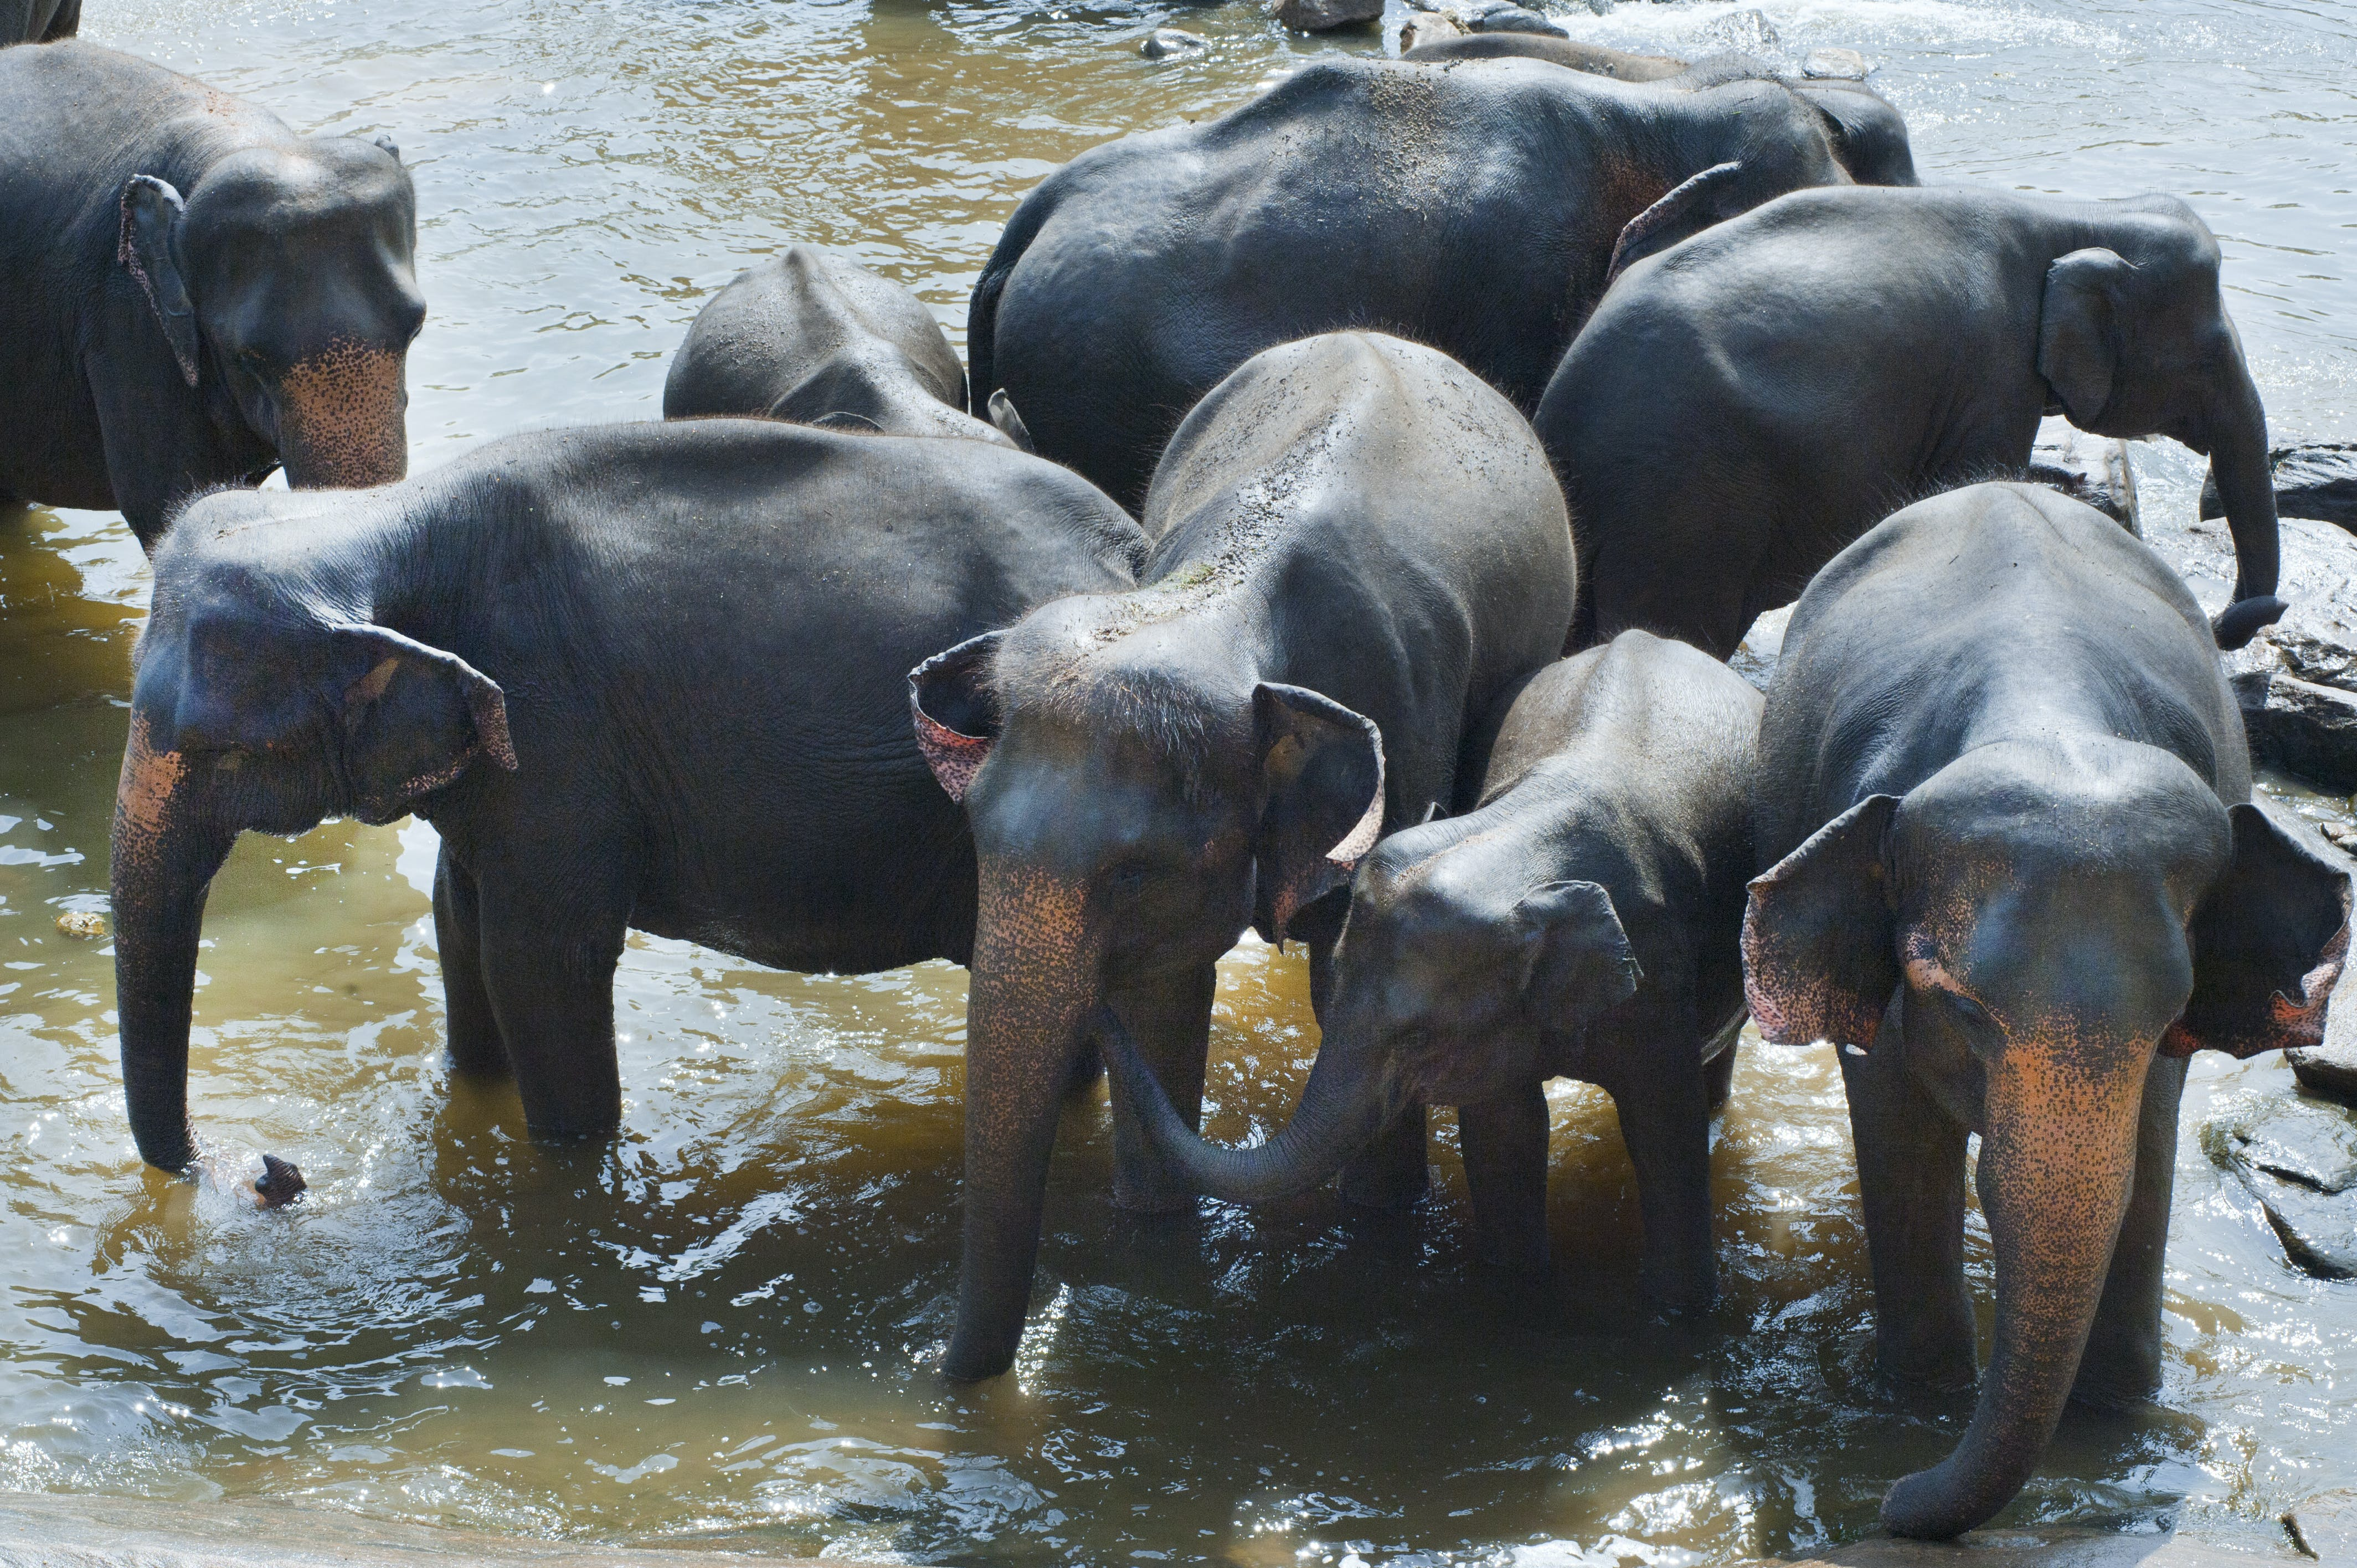 Group of Elephant Drinking Water